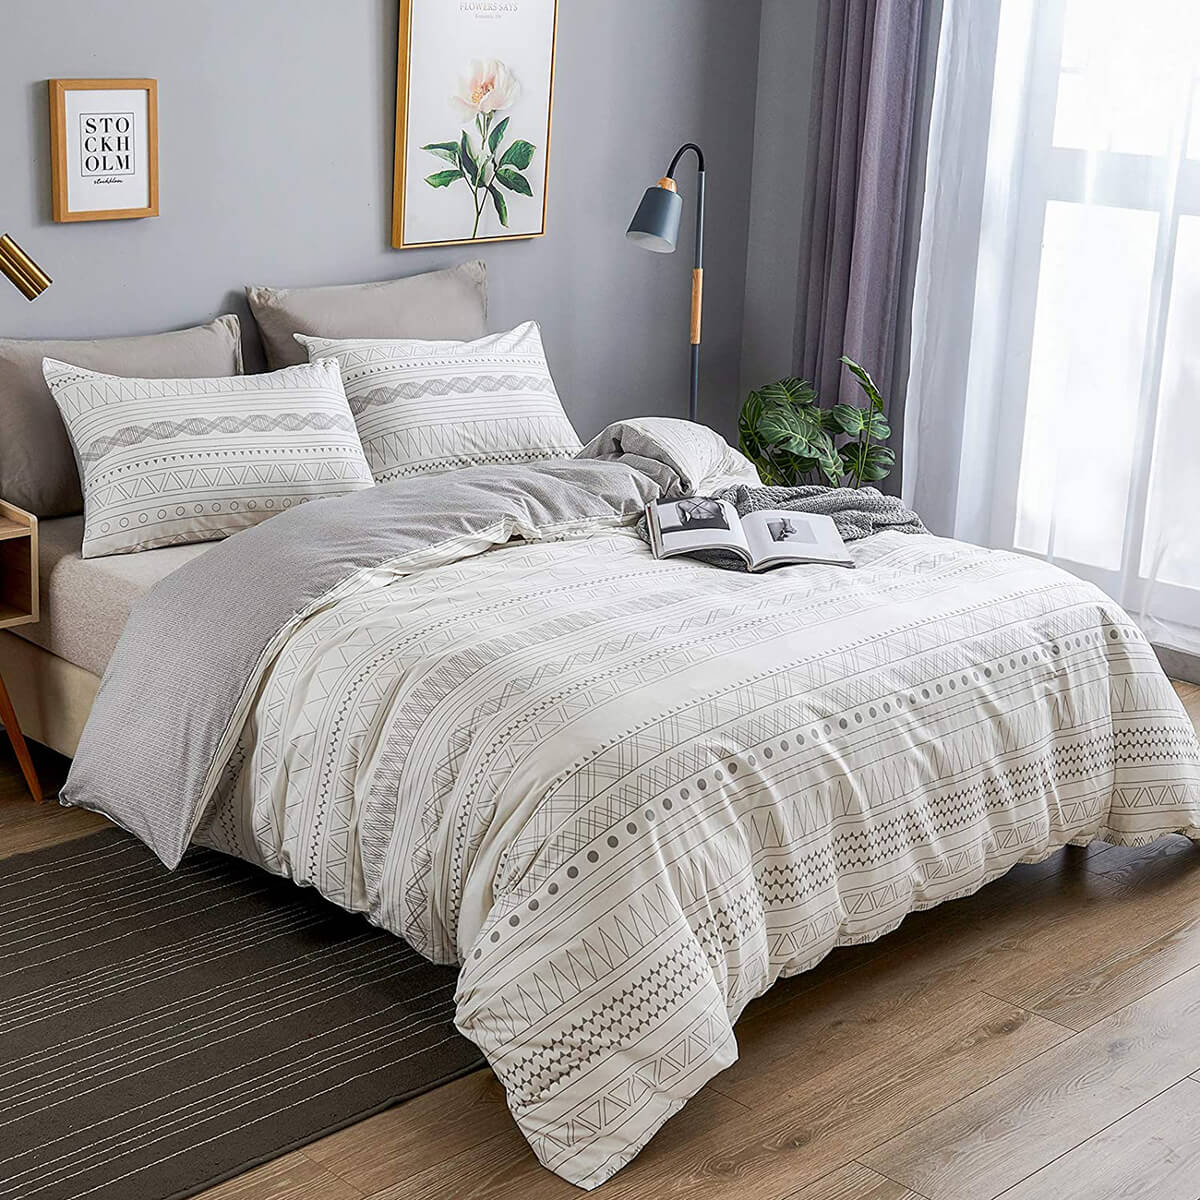 Warmdern Comfy Cotton Bed Cover in Bohemian Stripe